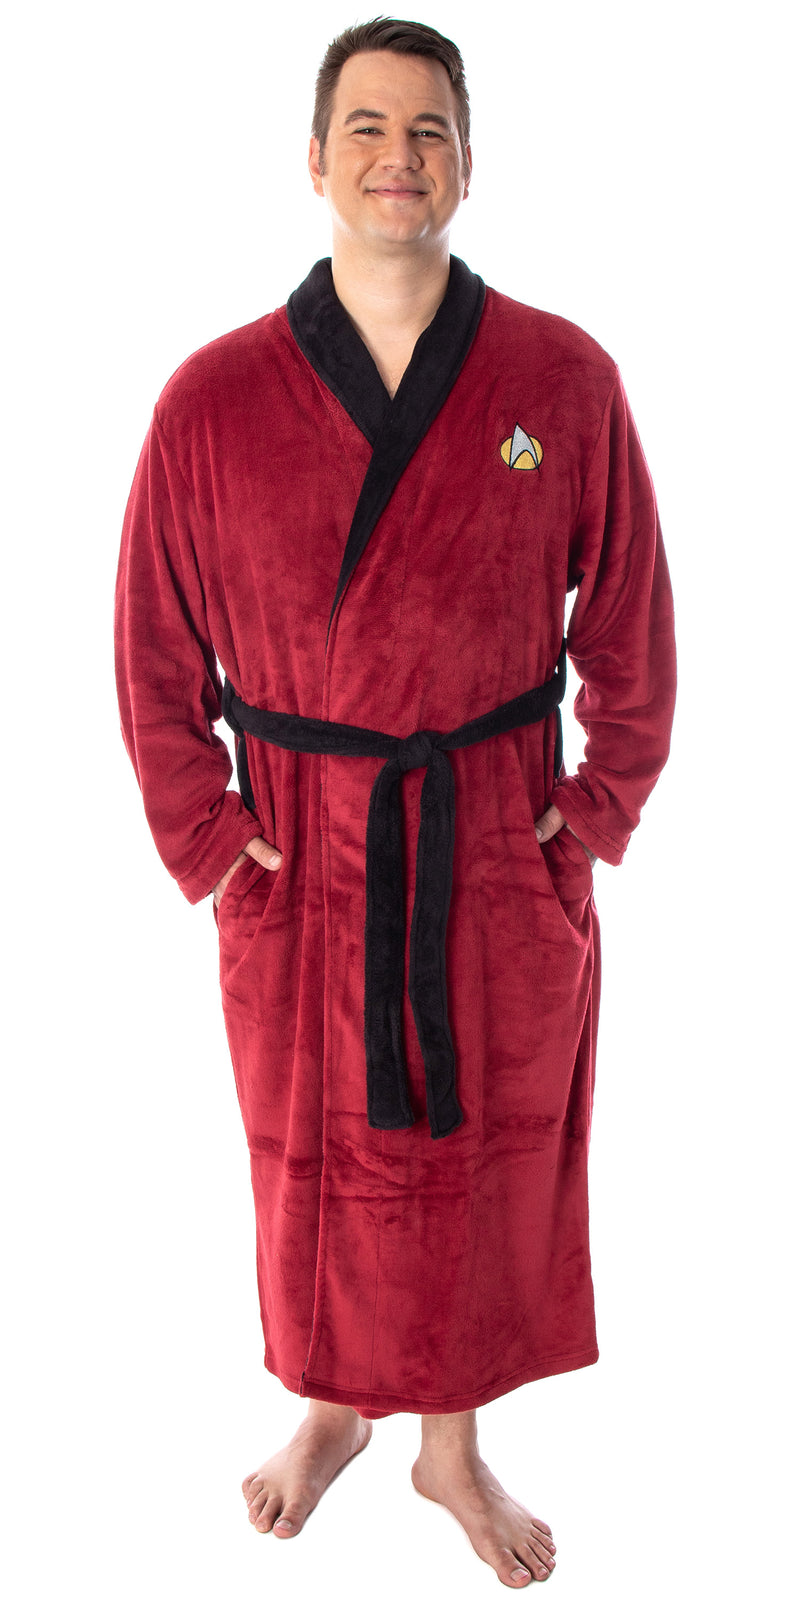 Star Trek The Next Generation Adult Costume Fleece Plush Robe Bathrobe - Big And Tall - Picard